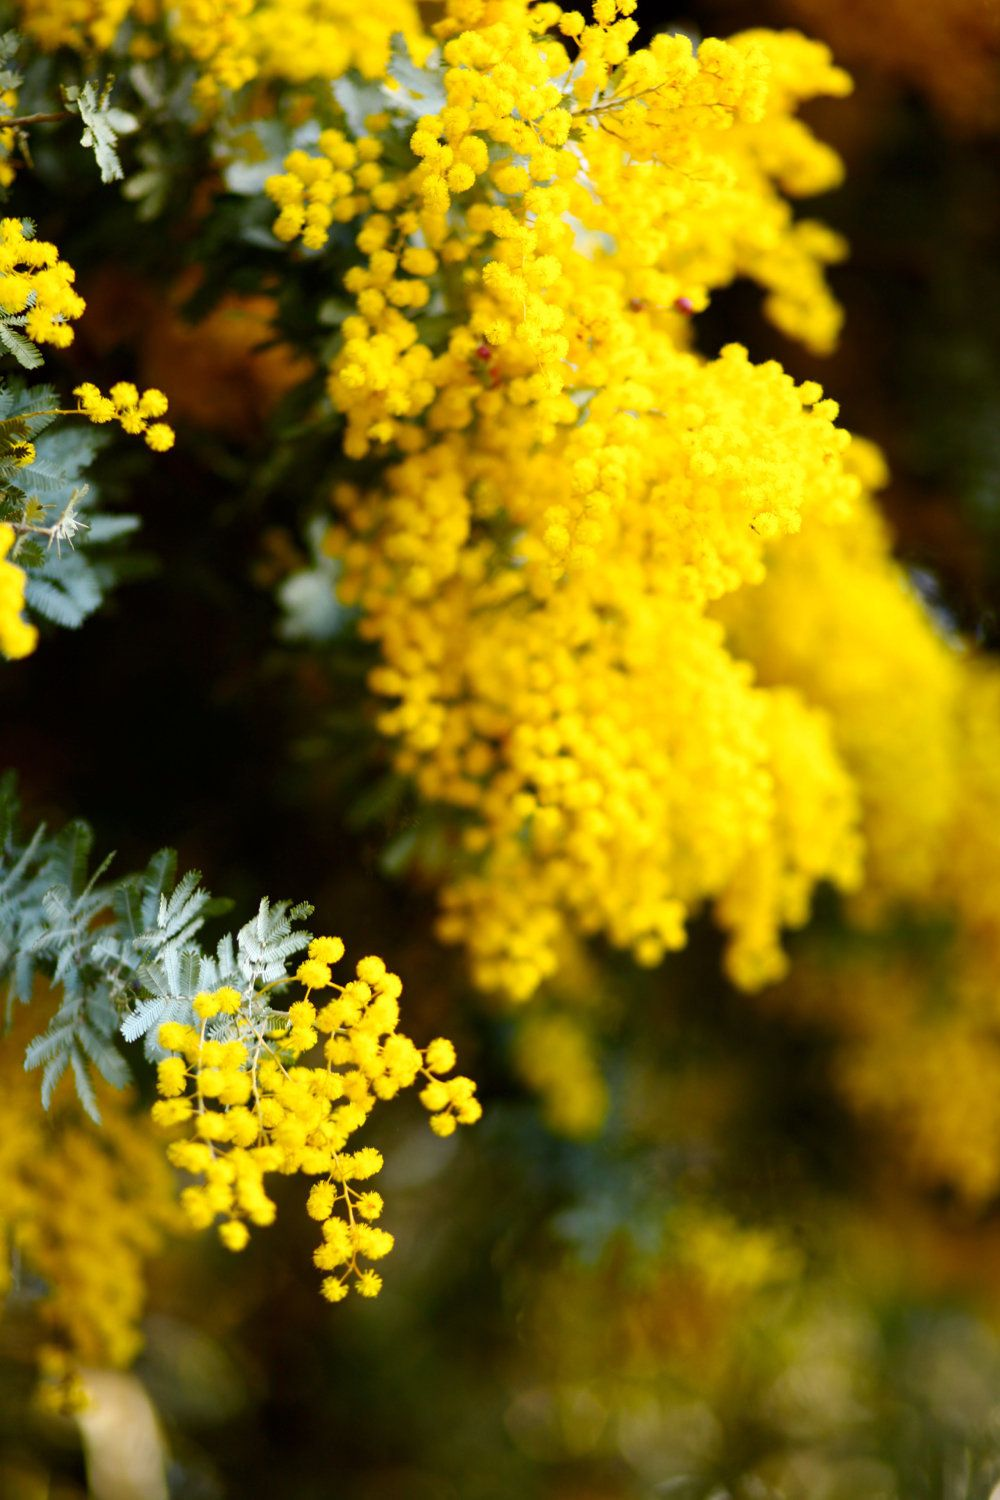 Golden Wattle Photography Print Wall ArtLake